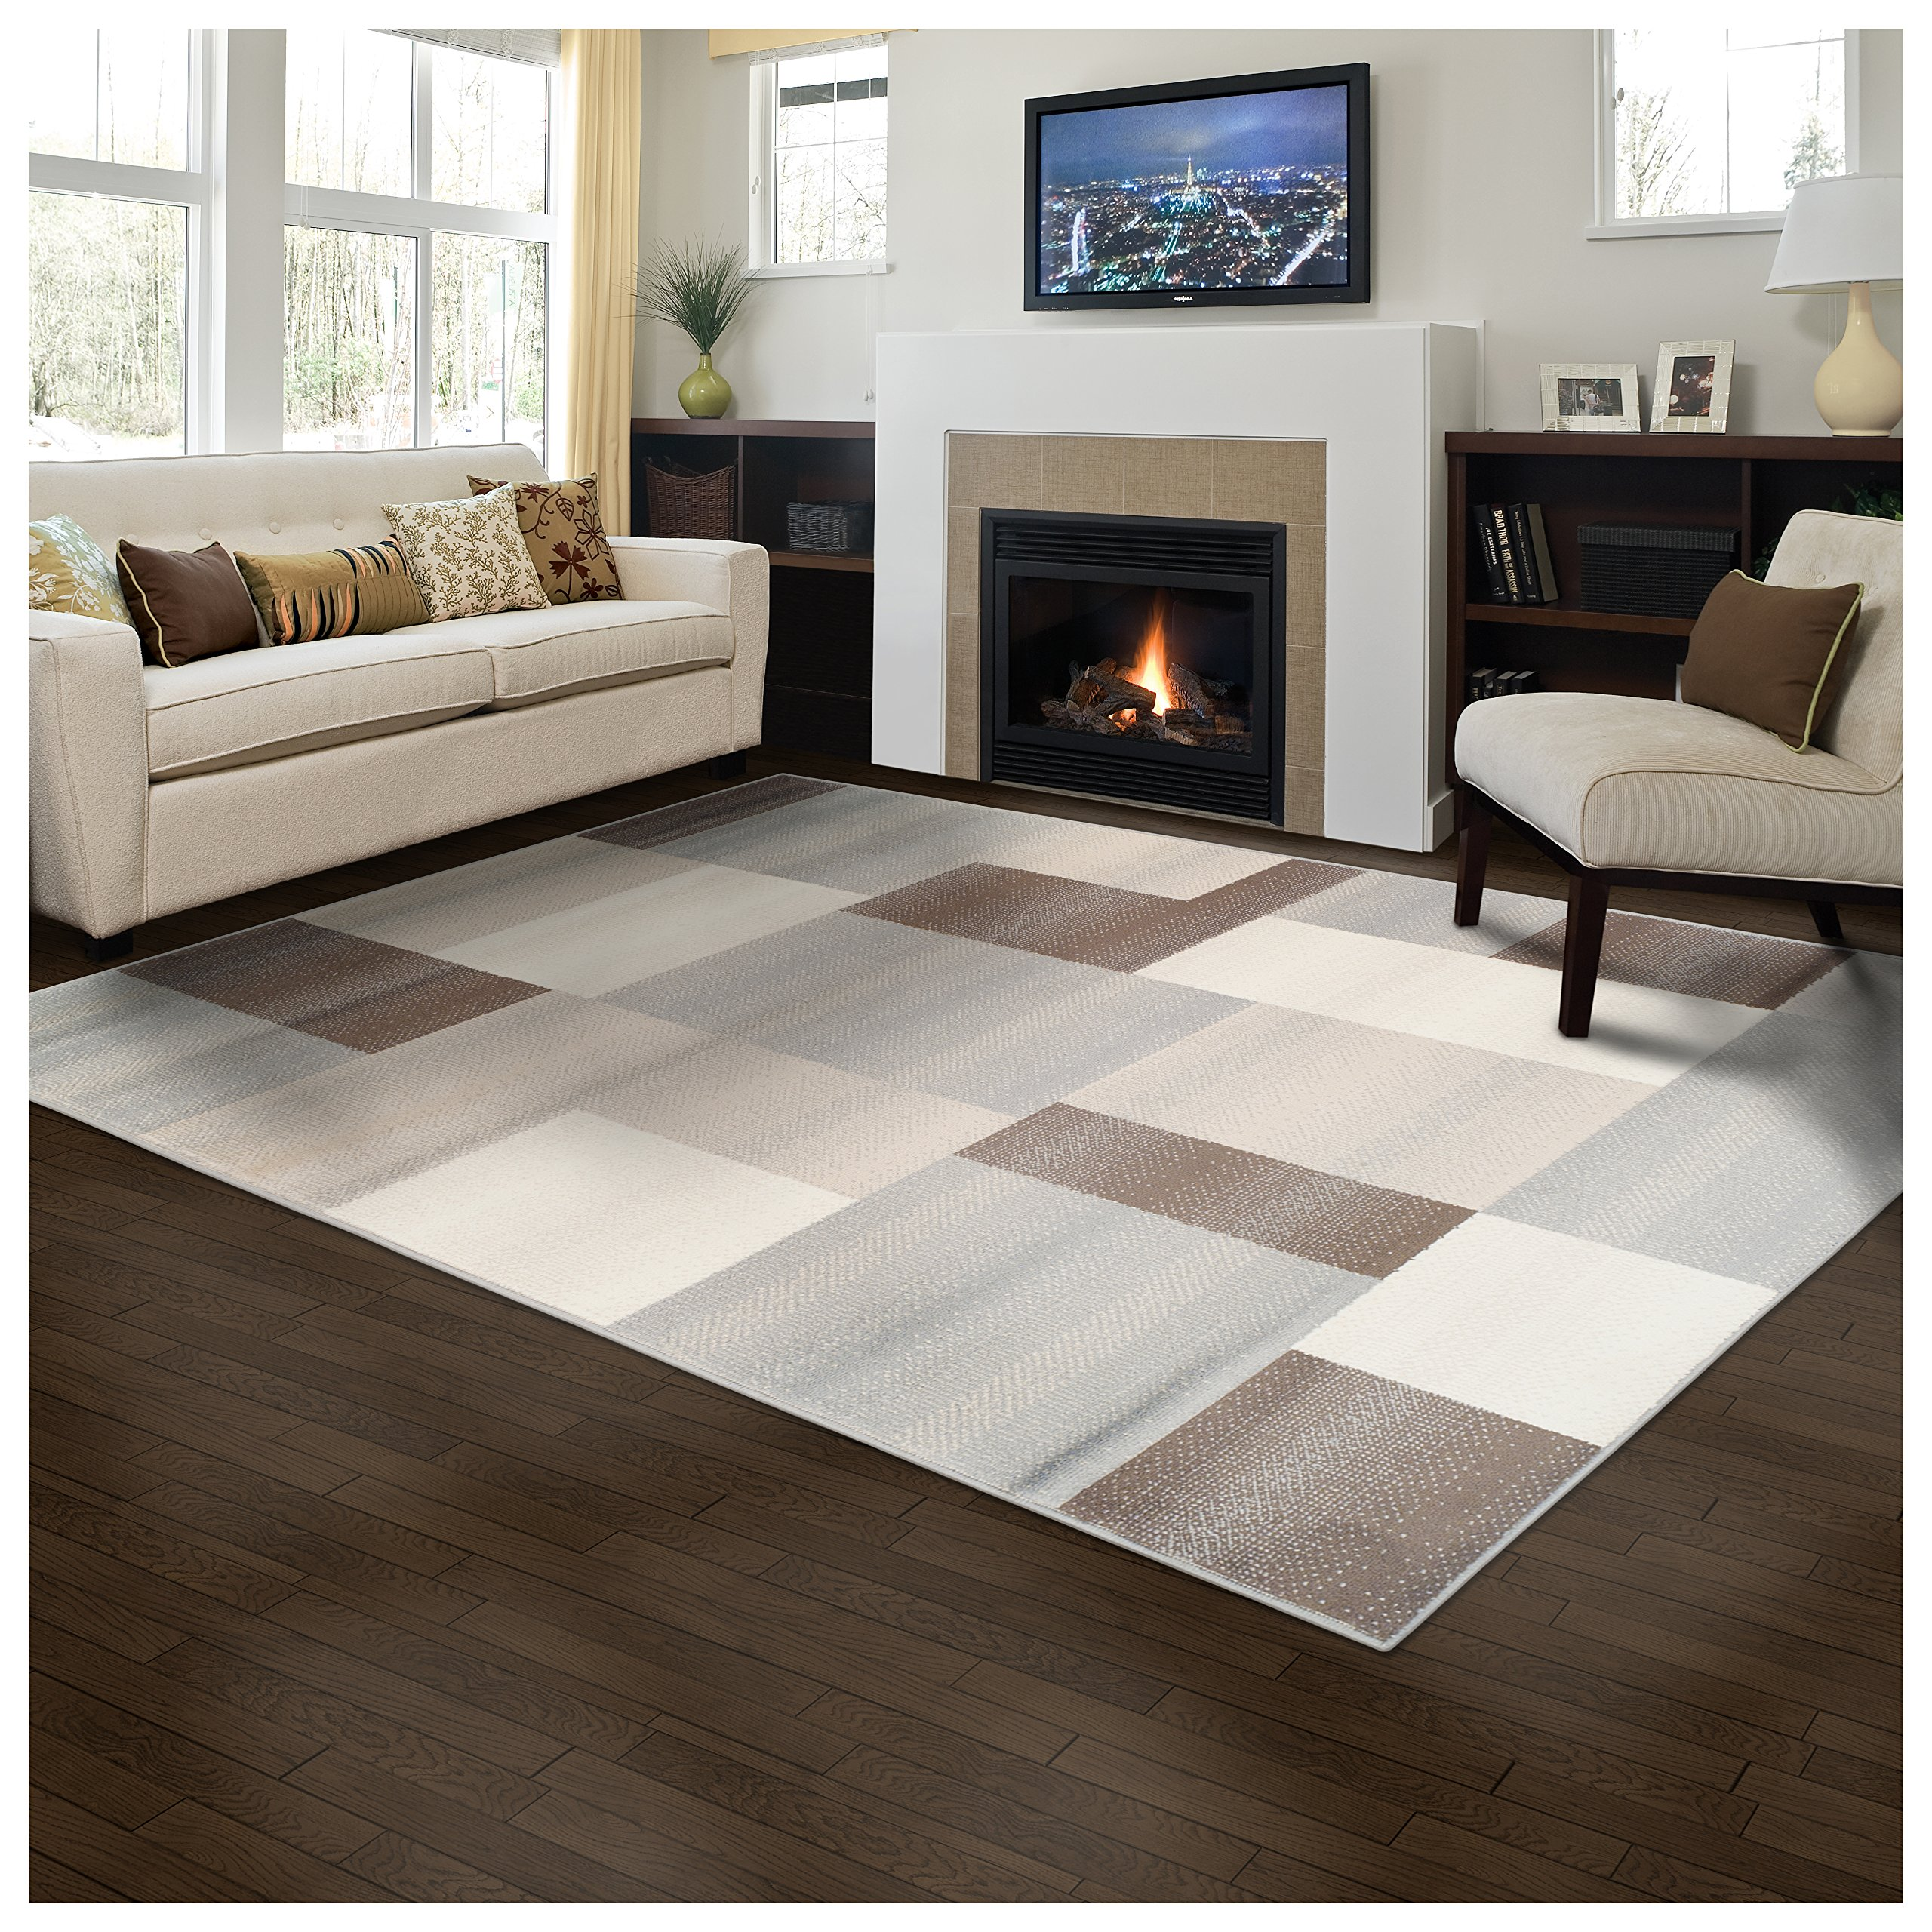 Superior Designer Clifton Collection Area Rug, 8mm Pile Height with Jute Backing, Contemporary Geometric Design, Anti-Static, Water-Repellent Rugs - Beige, 5' x 8' Rug